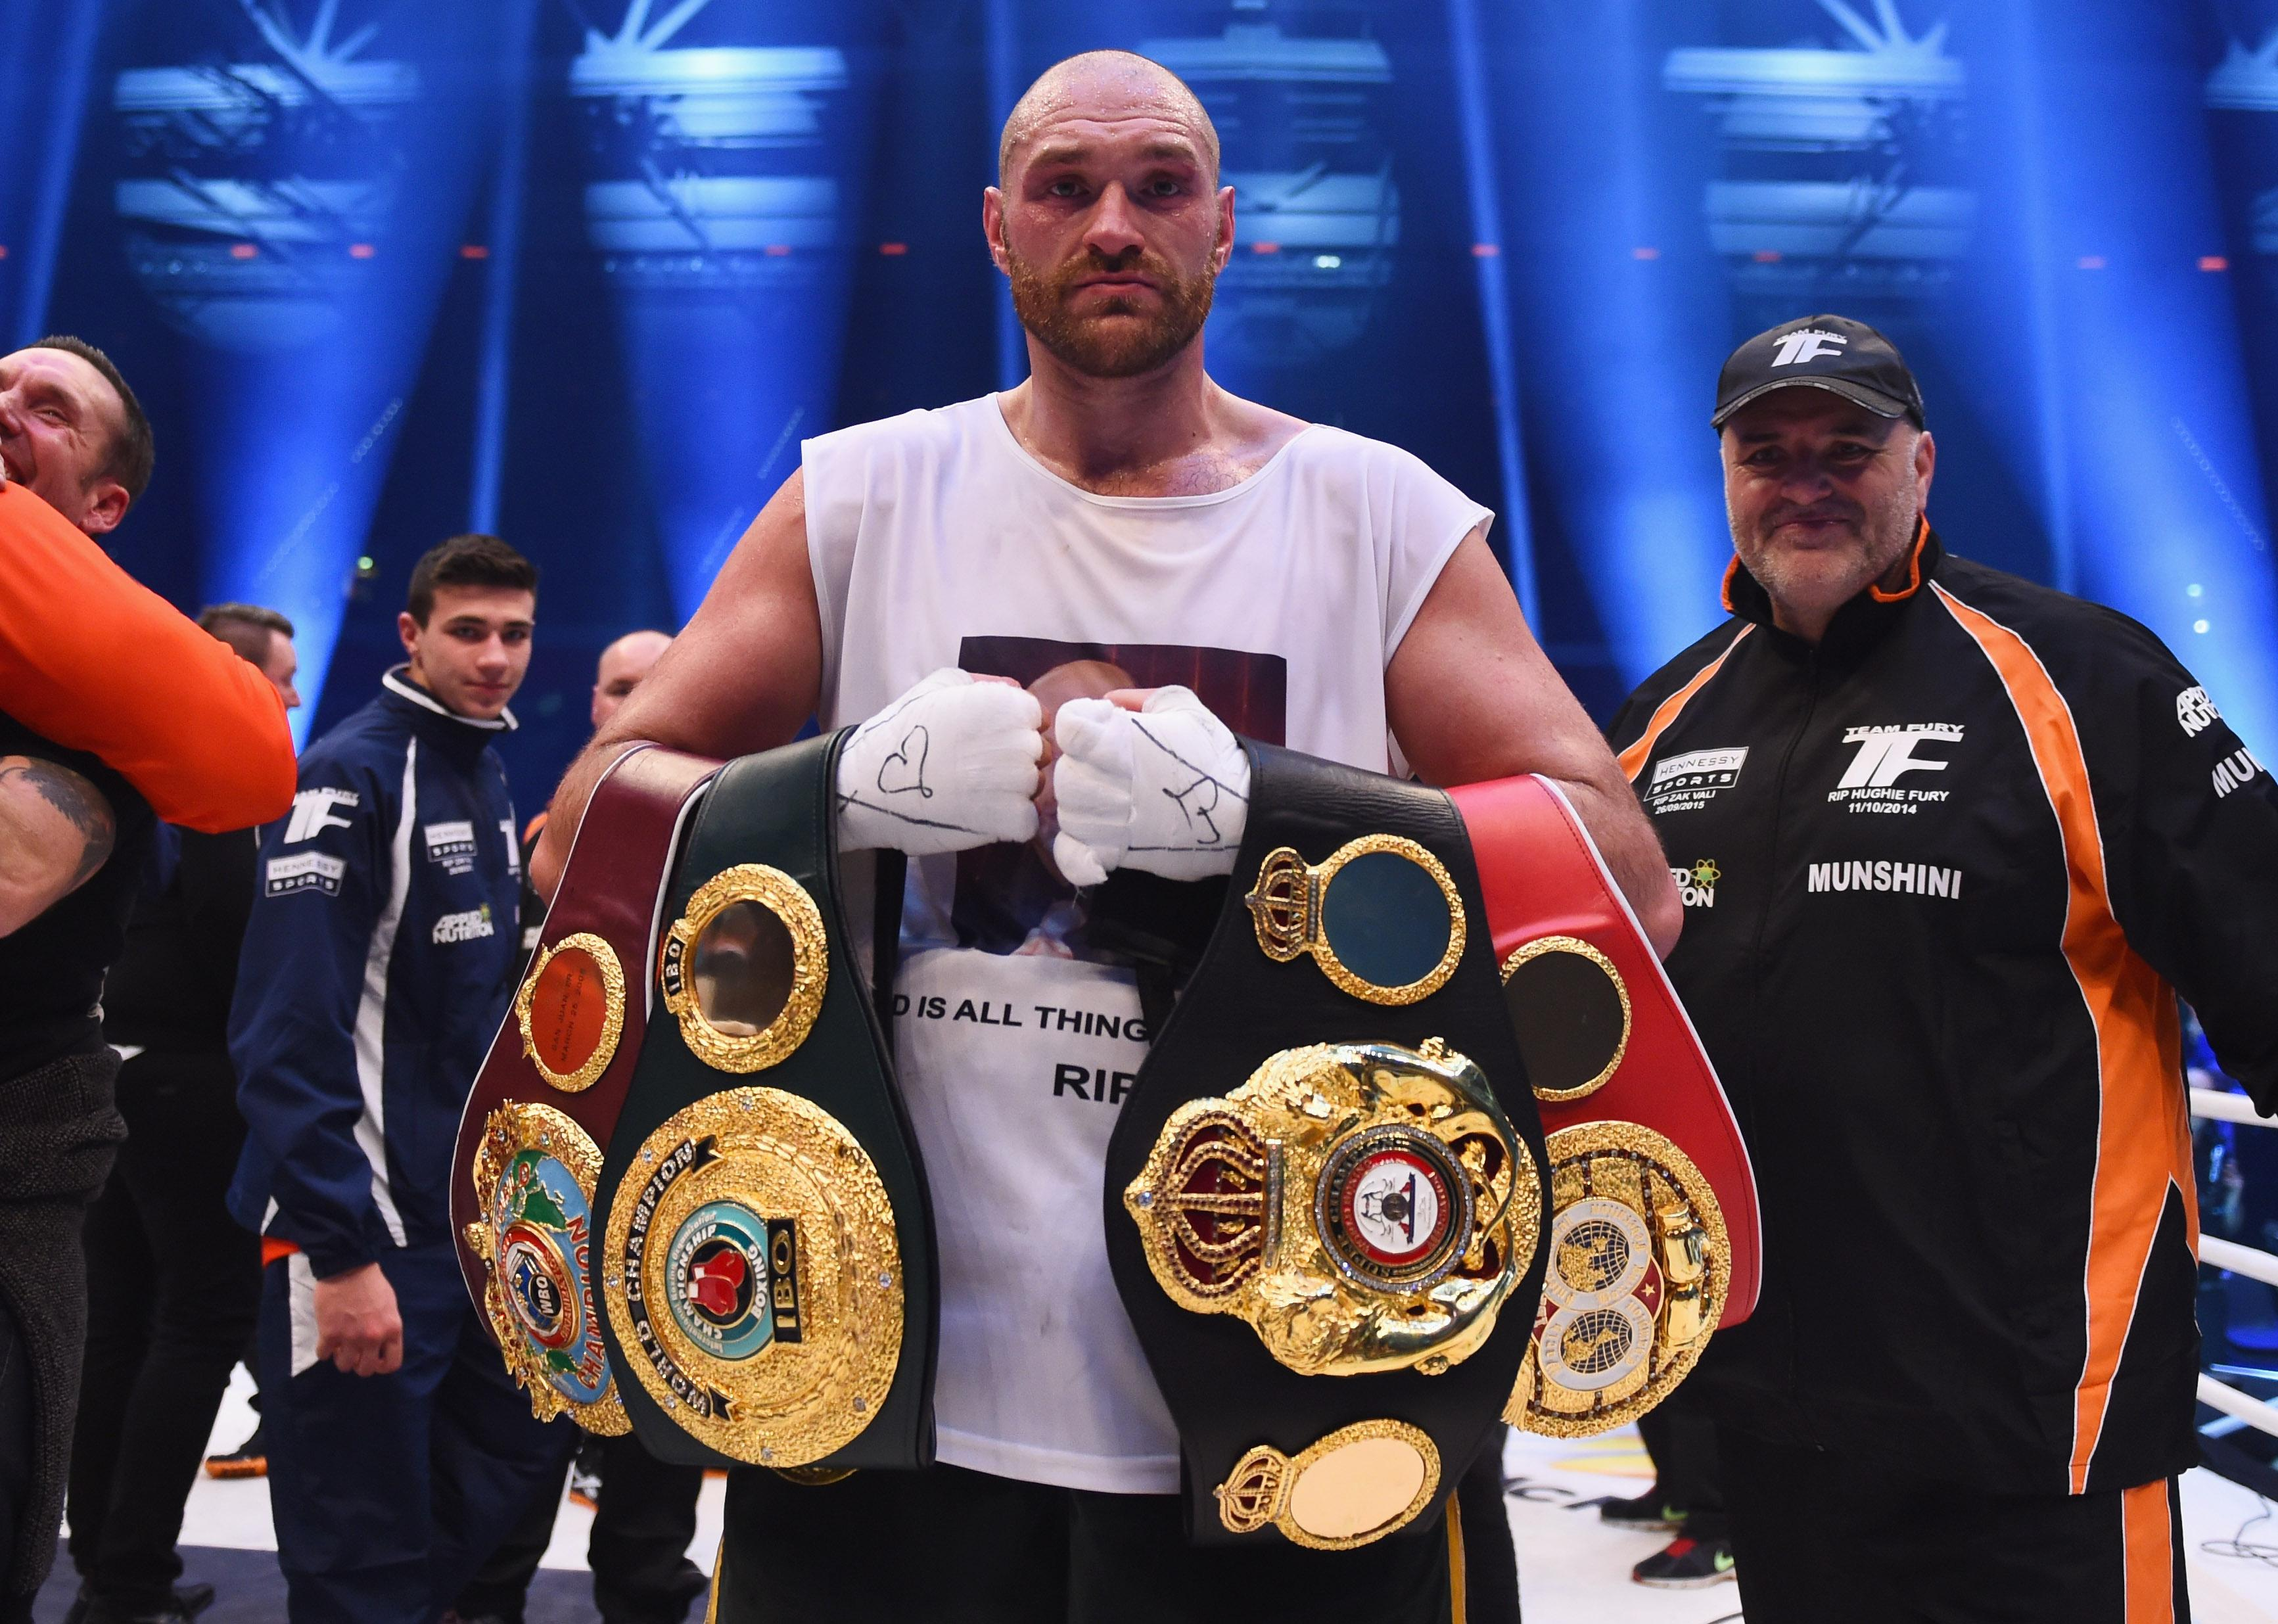 The Gypsy King once held the WBA, IBF and WBO heavyweight world titles but he relinquished the,m after a battle with mental health